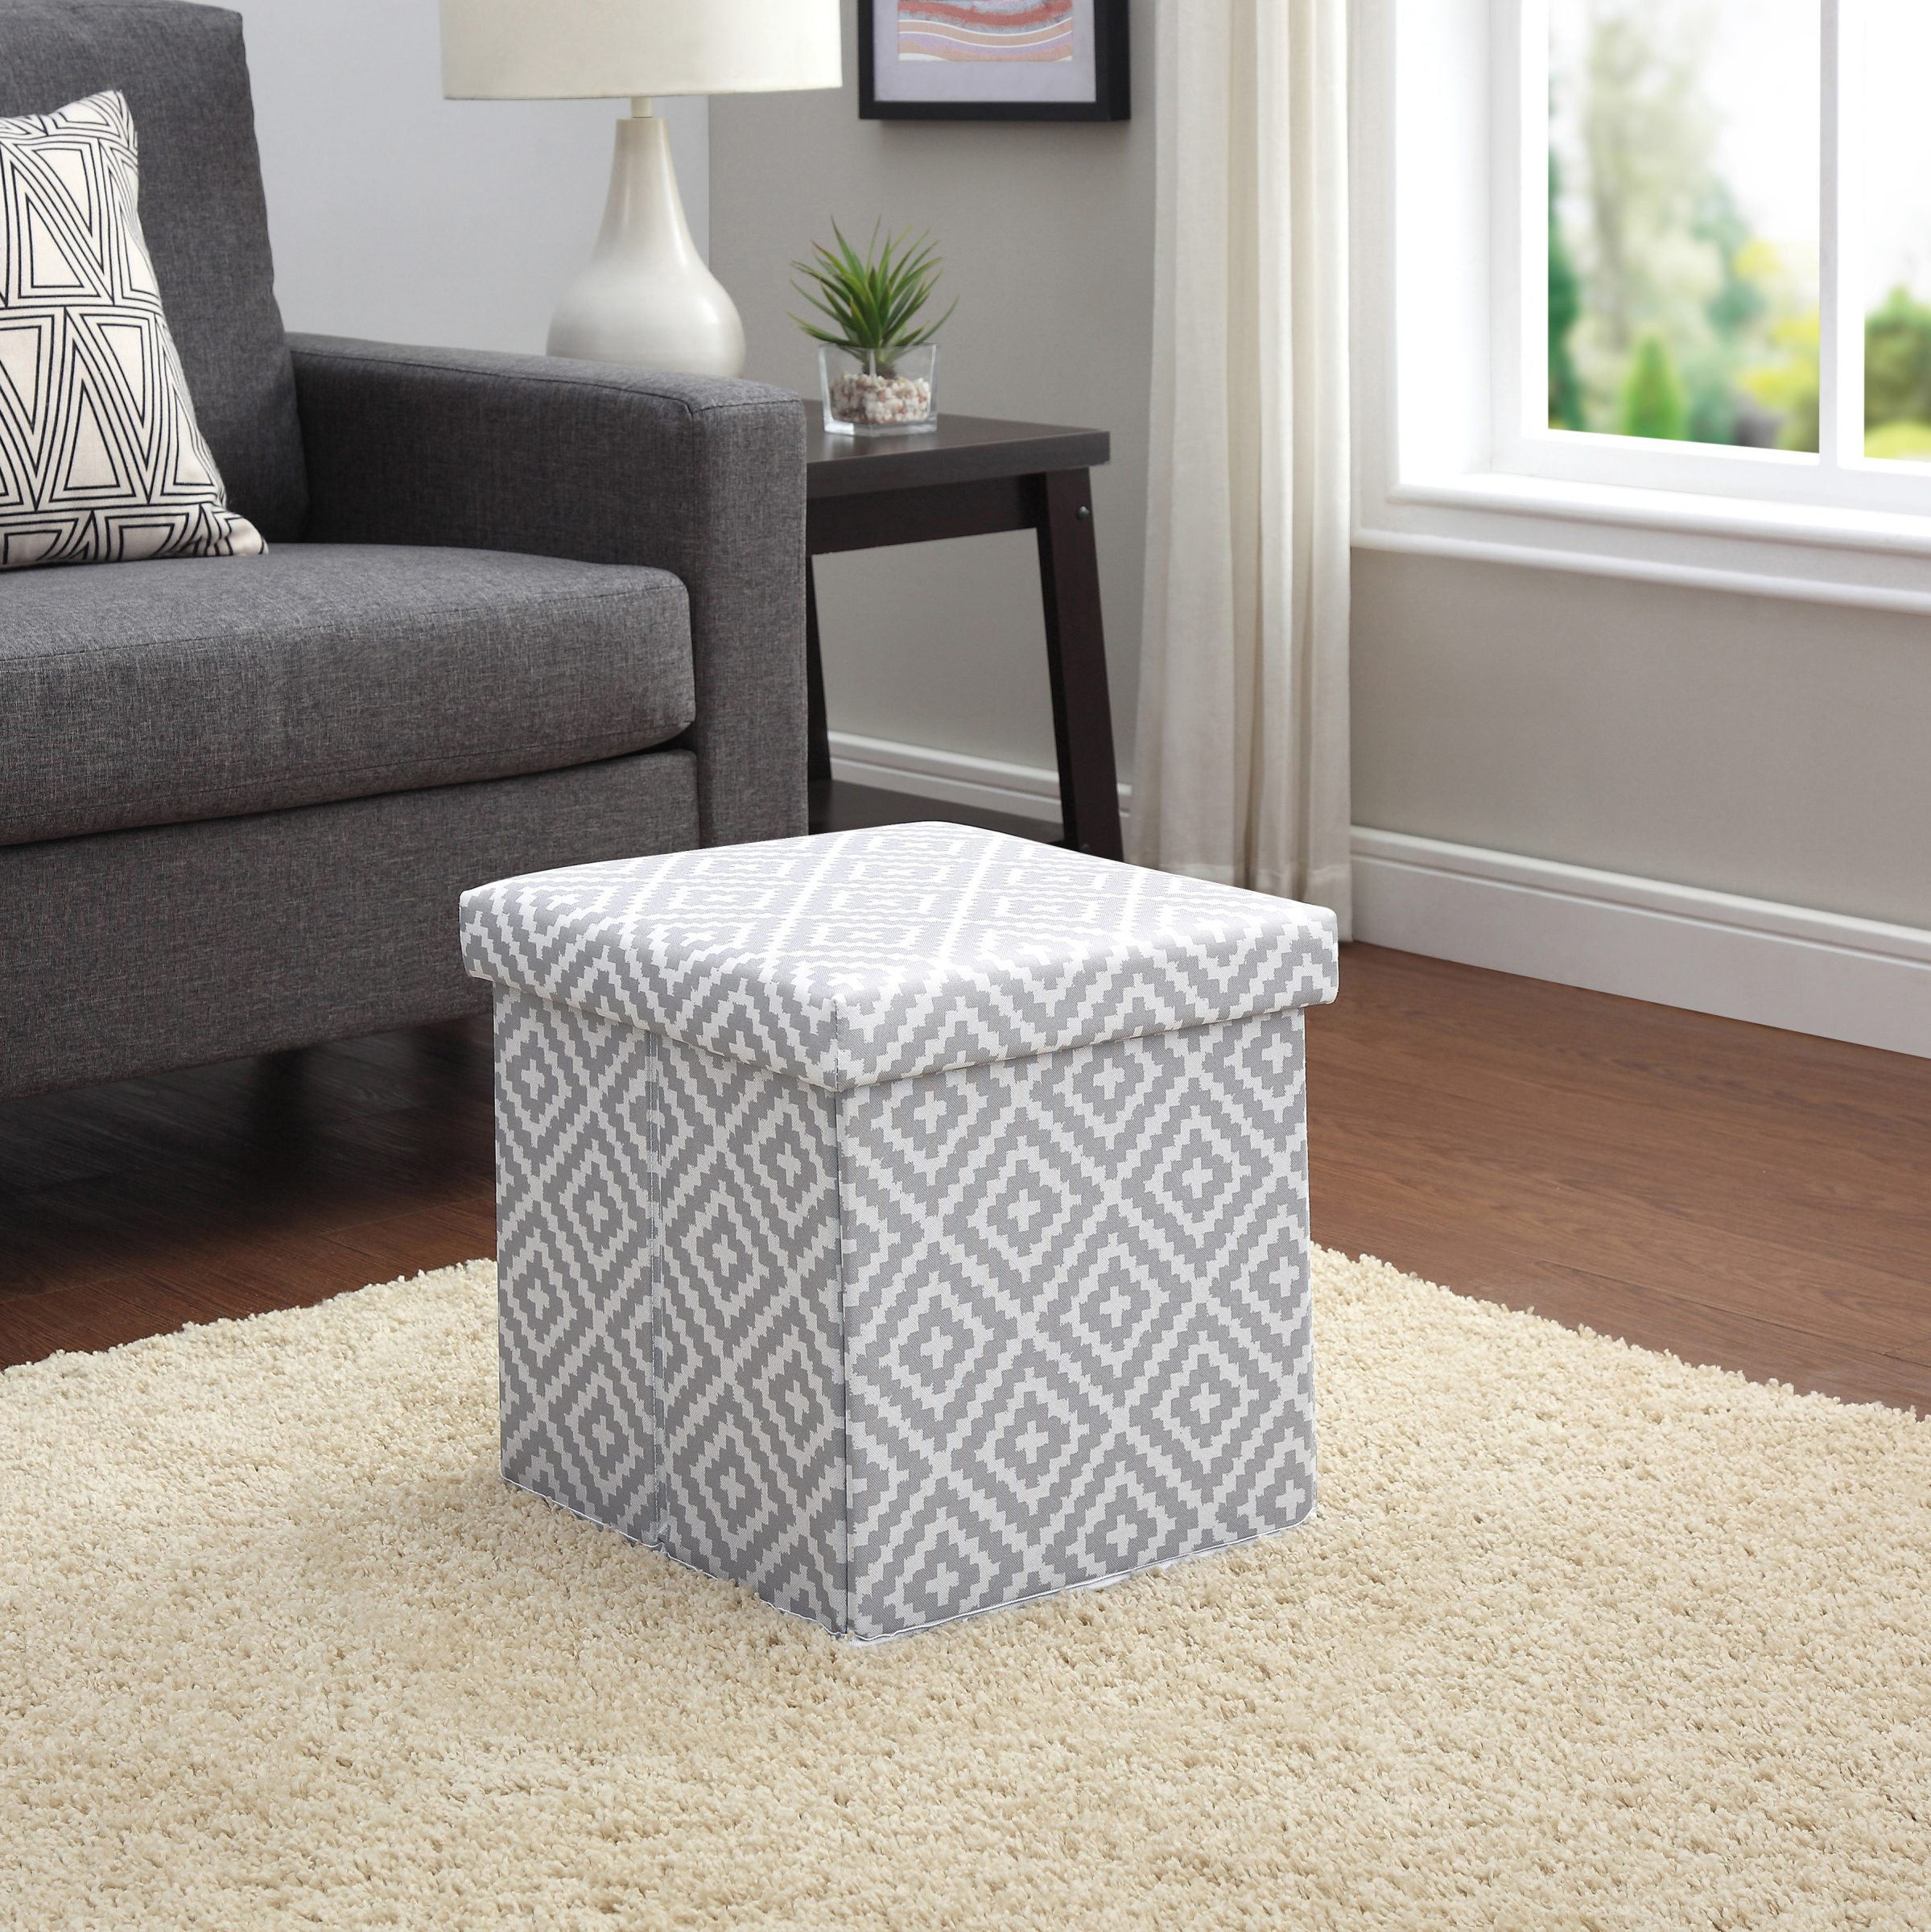 Mainstays Collapsible Storage Ottoman, Diamond Pumice